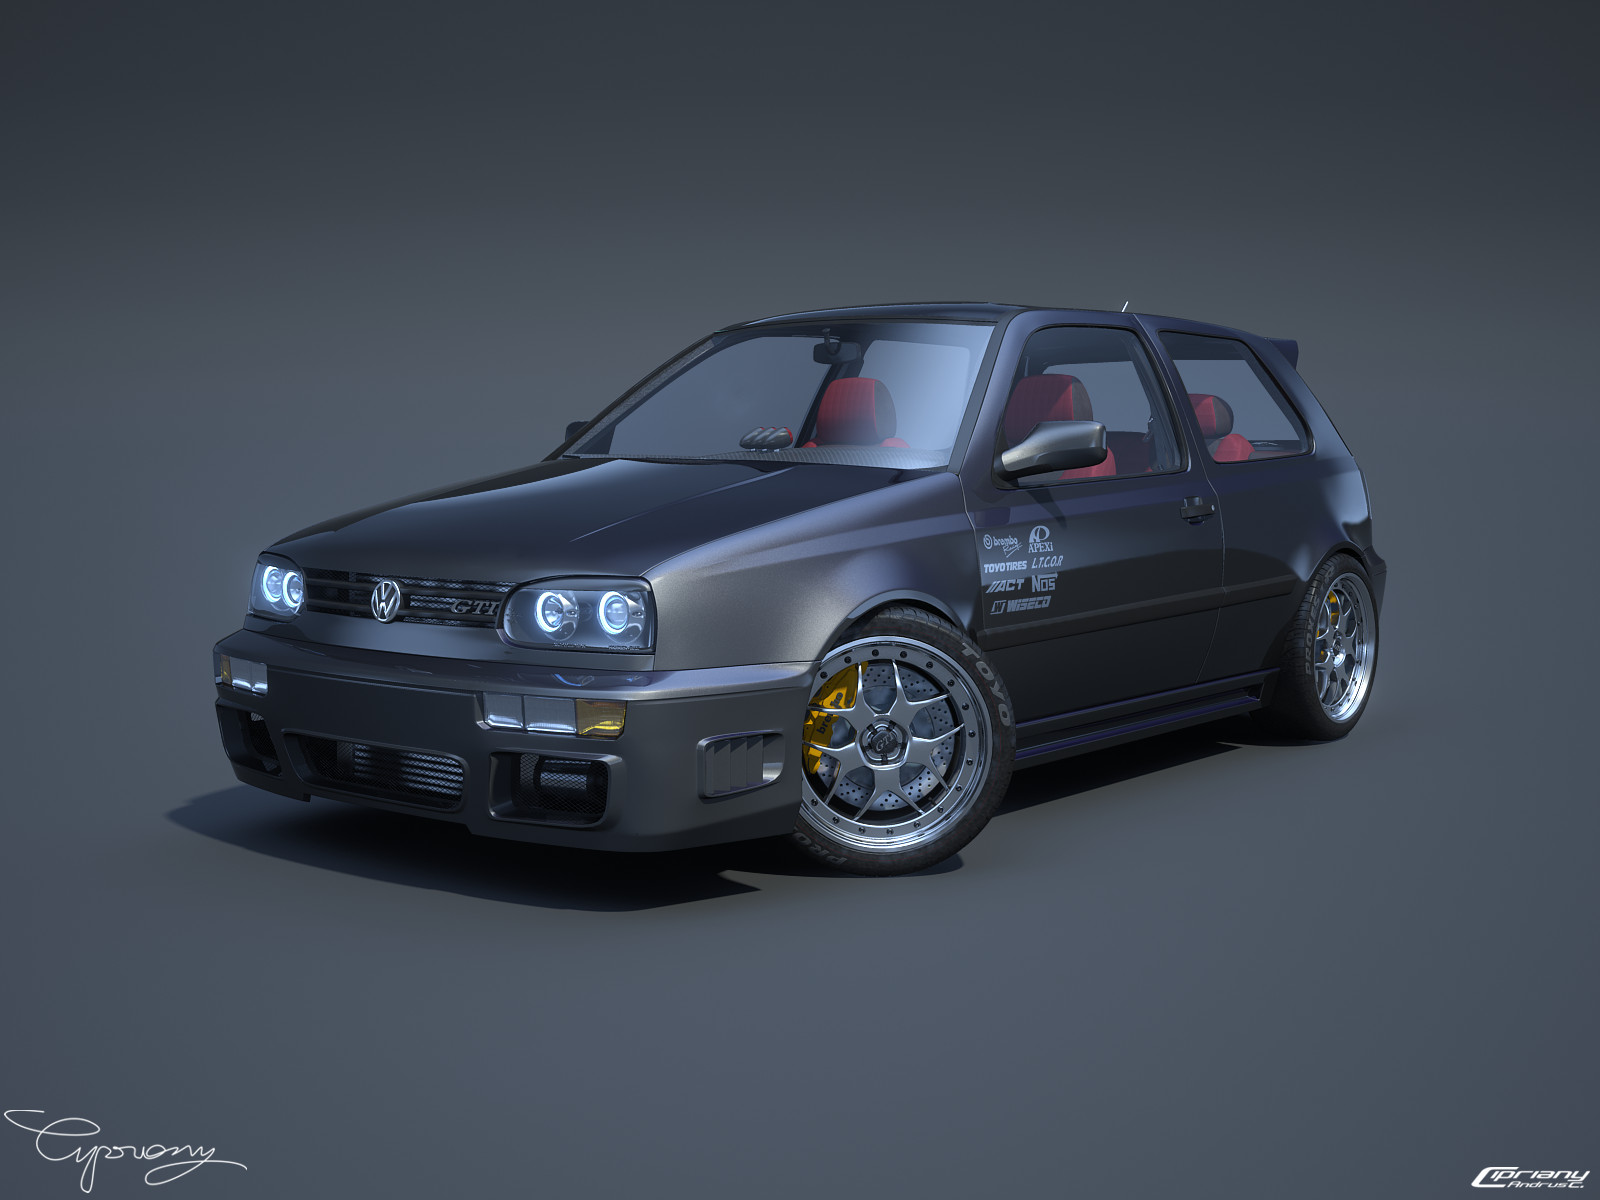 vw golf 3 gti 16 by cipriany on deviantart. Black Bedroom Furniture Sets. Home Design Ideas